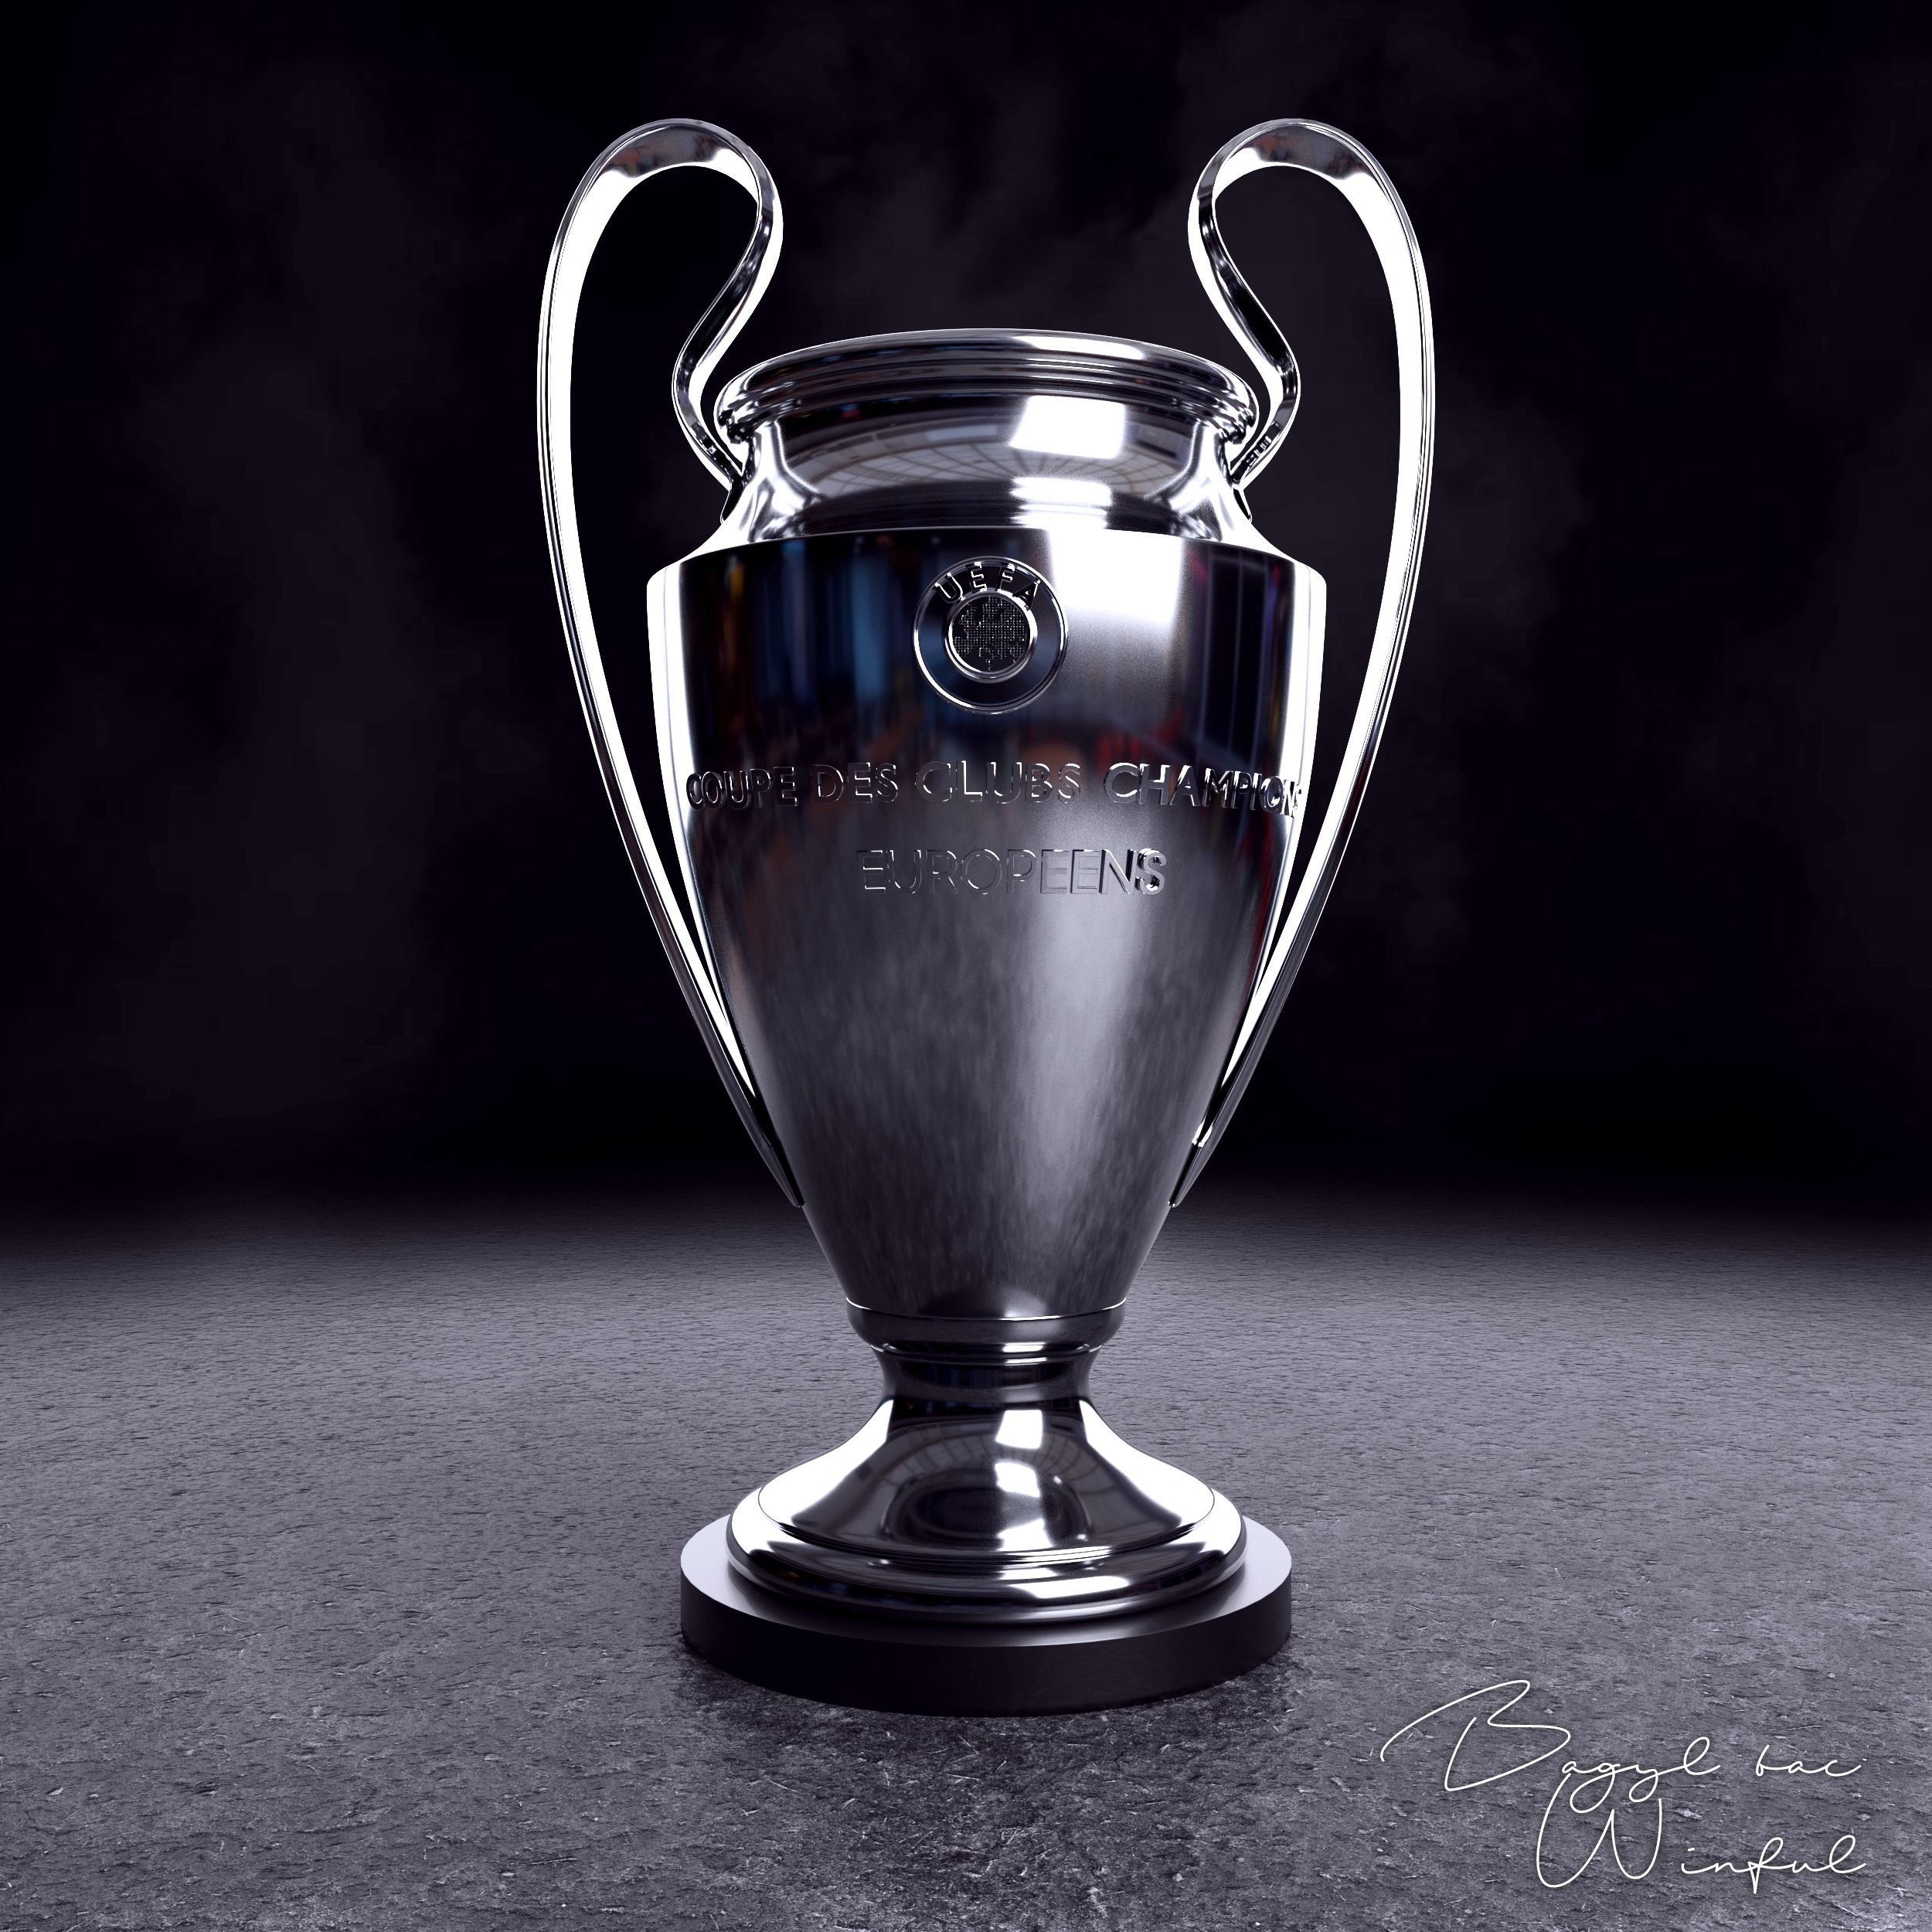 3d model uefa champions league trophy cgtrader uefa champions league trophy 3d model